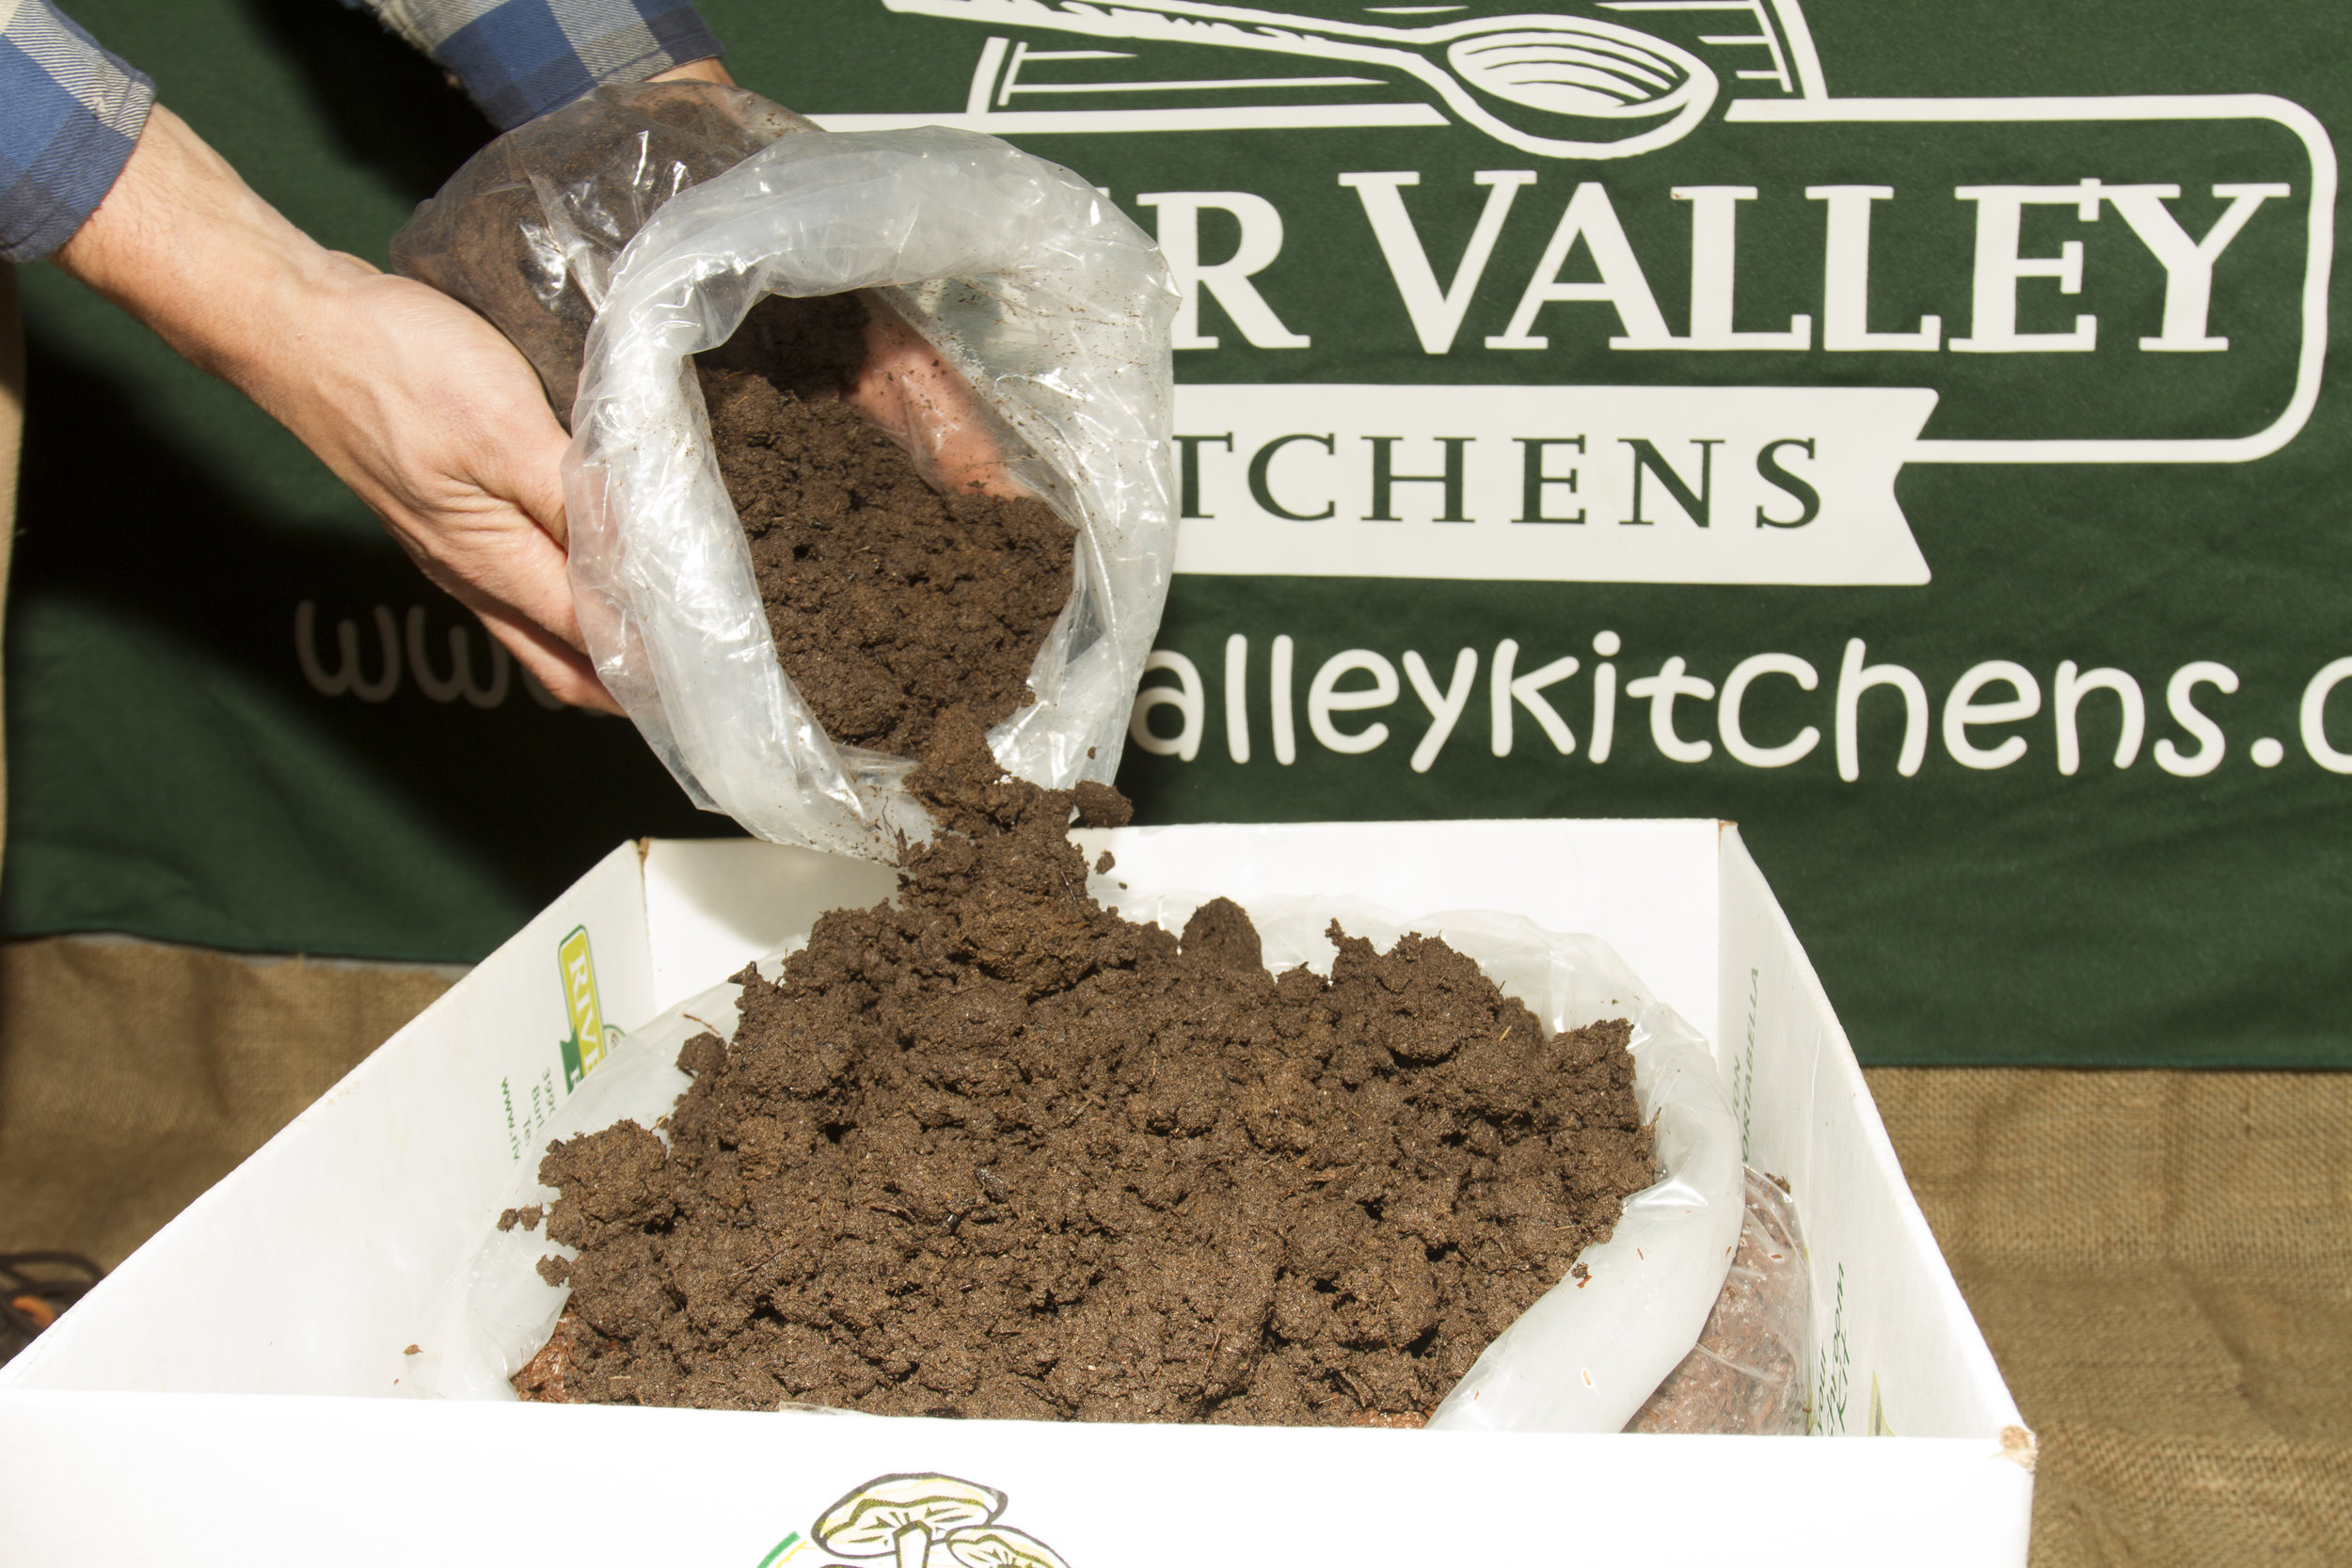 Step 1: Place all the peat moss (casing soil) from the small bag onto the surface of the large bag. This is the casing oil.  Take a mental note of how moist this is, this is how moist you want to keep the kit during all stages of growth.